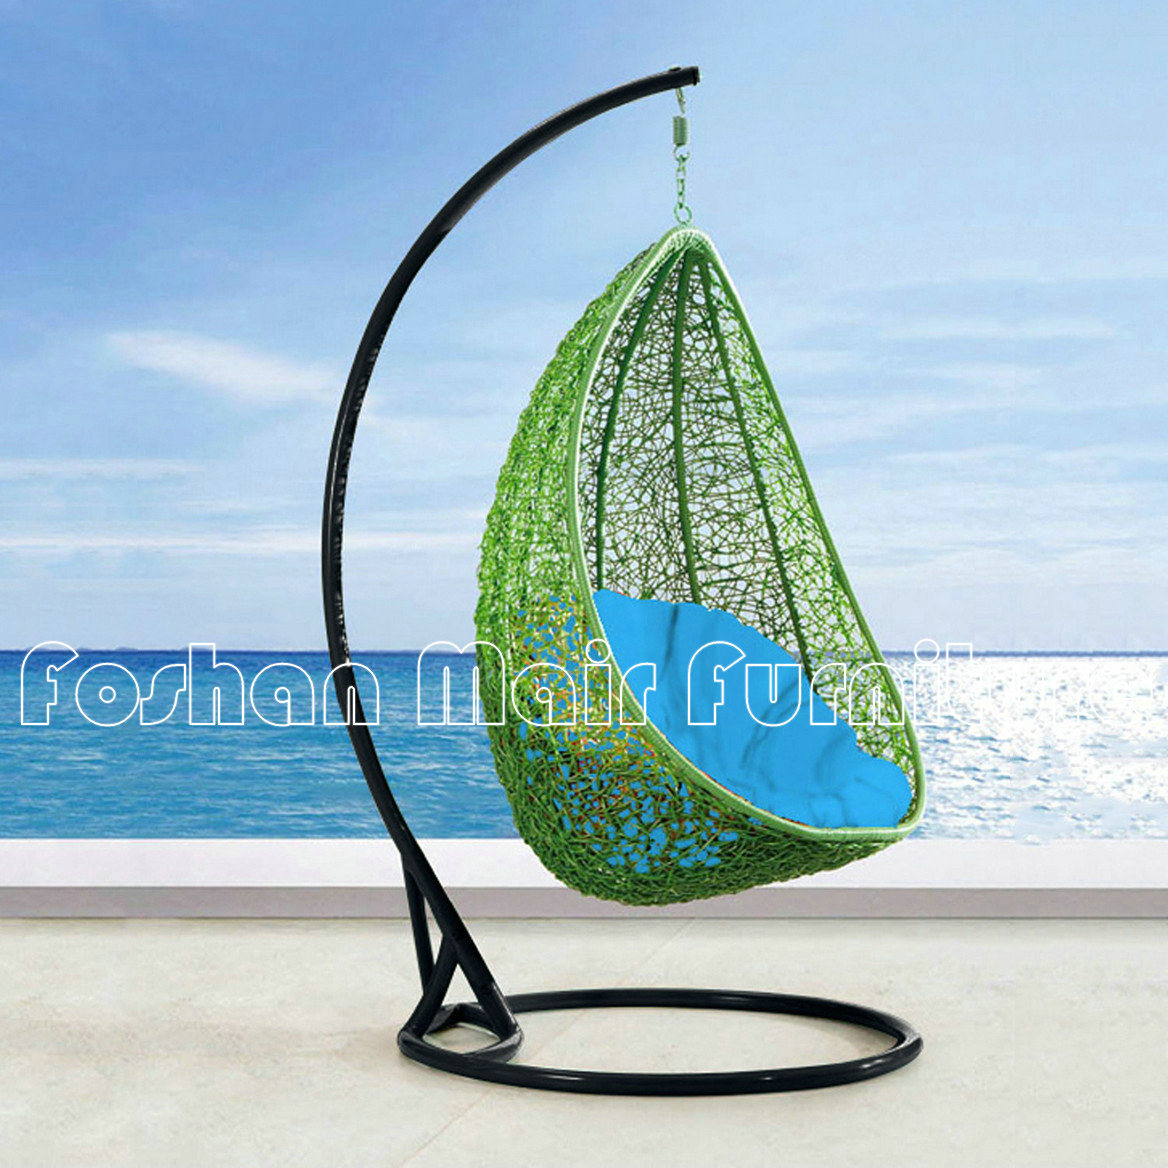 Egg Swing Chair China Popular And Nice Outdoor Hanging Egg Chair Garden